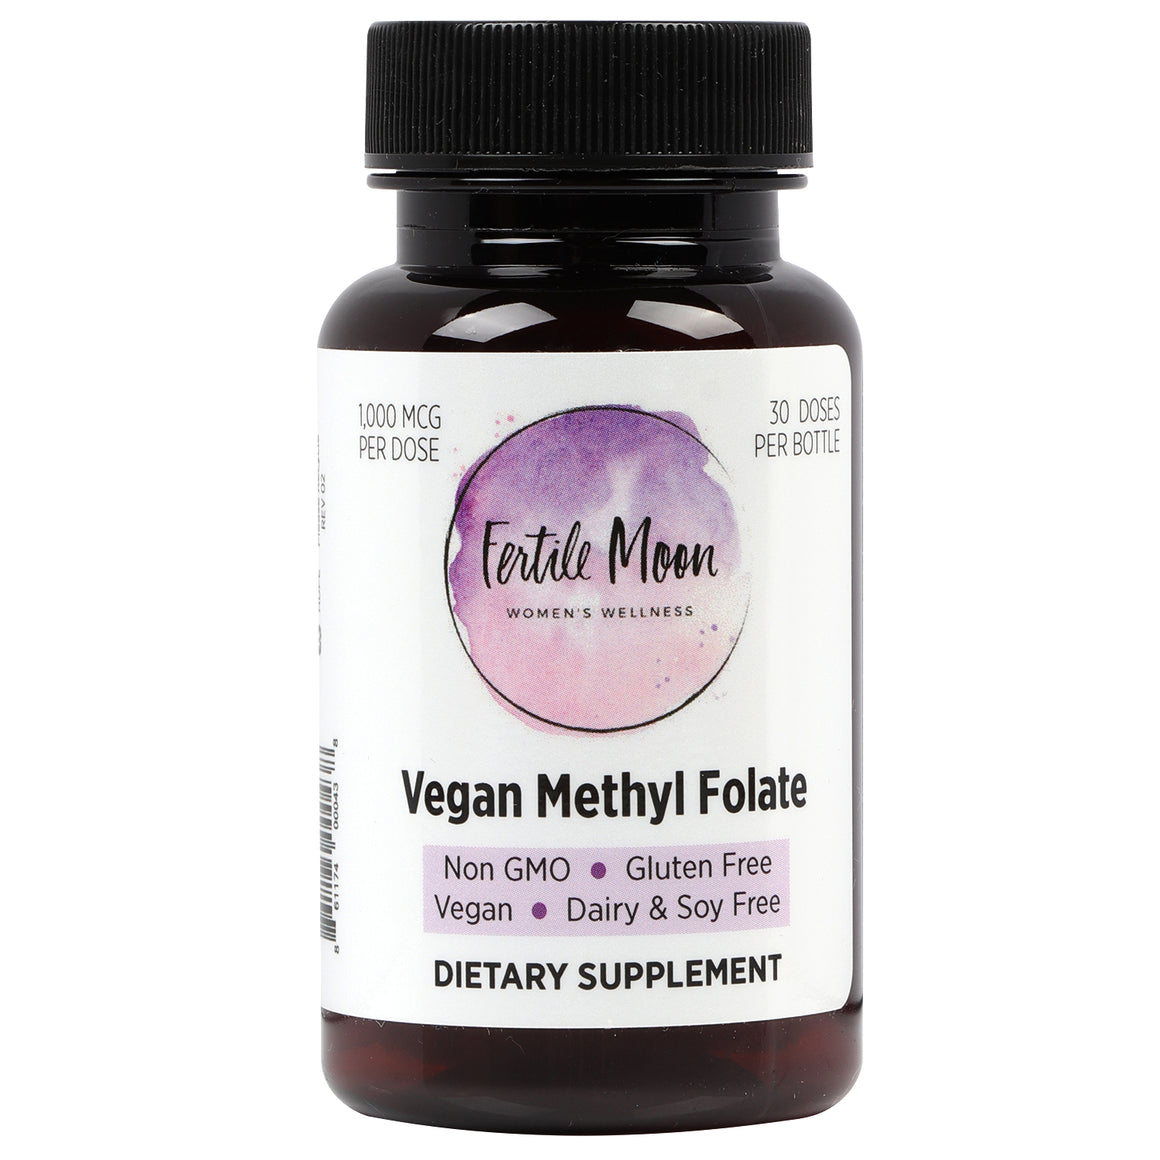 Vegan Methyl Folate by Fertile Moon® - 1000 mcg (1 mg) per Capsule - 30 Capsules per Bottle - Non-GMO, No Gluten, No Dairy, No Soy